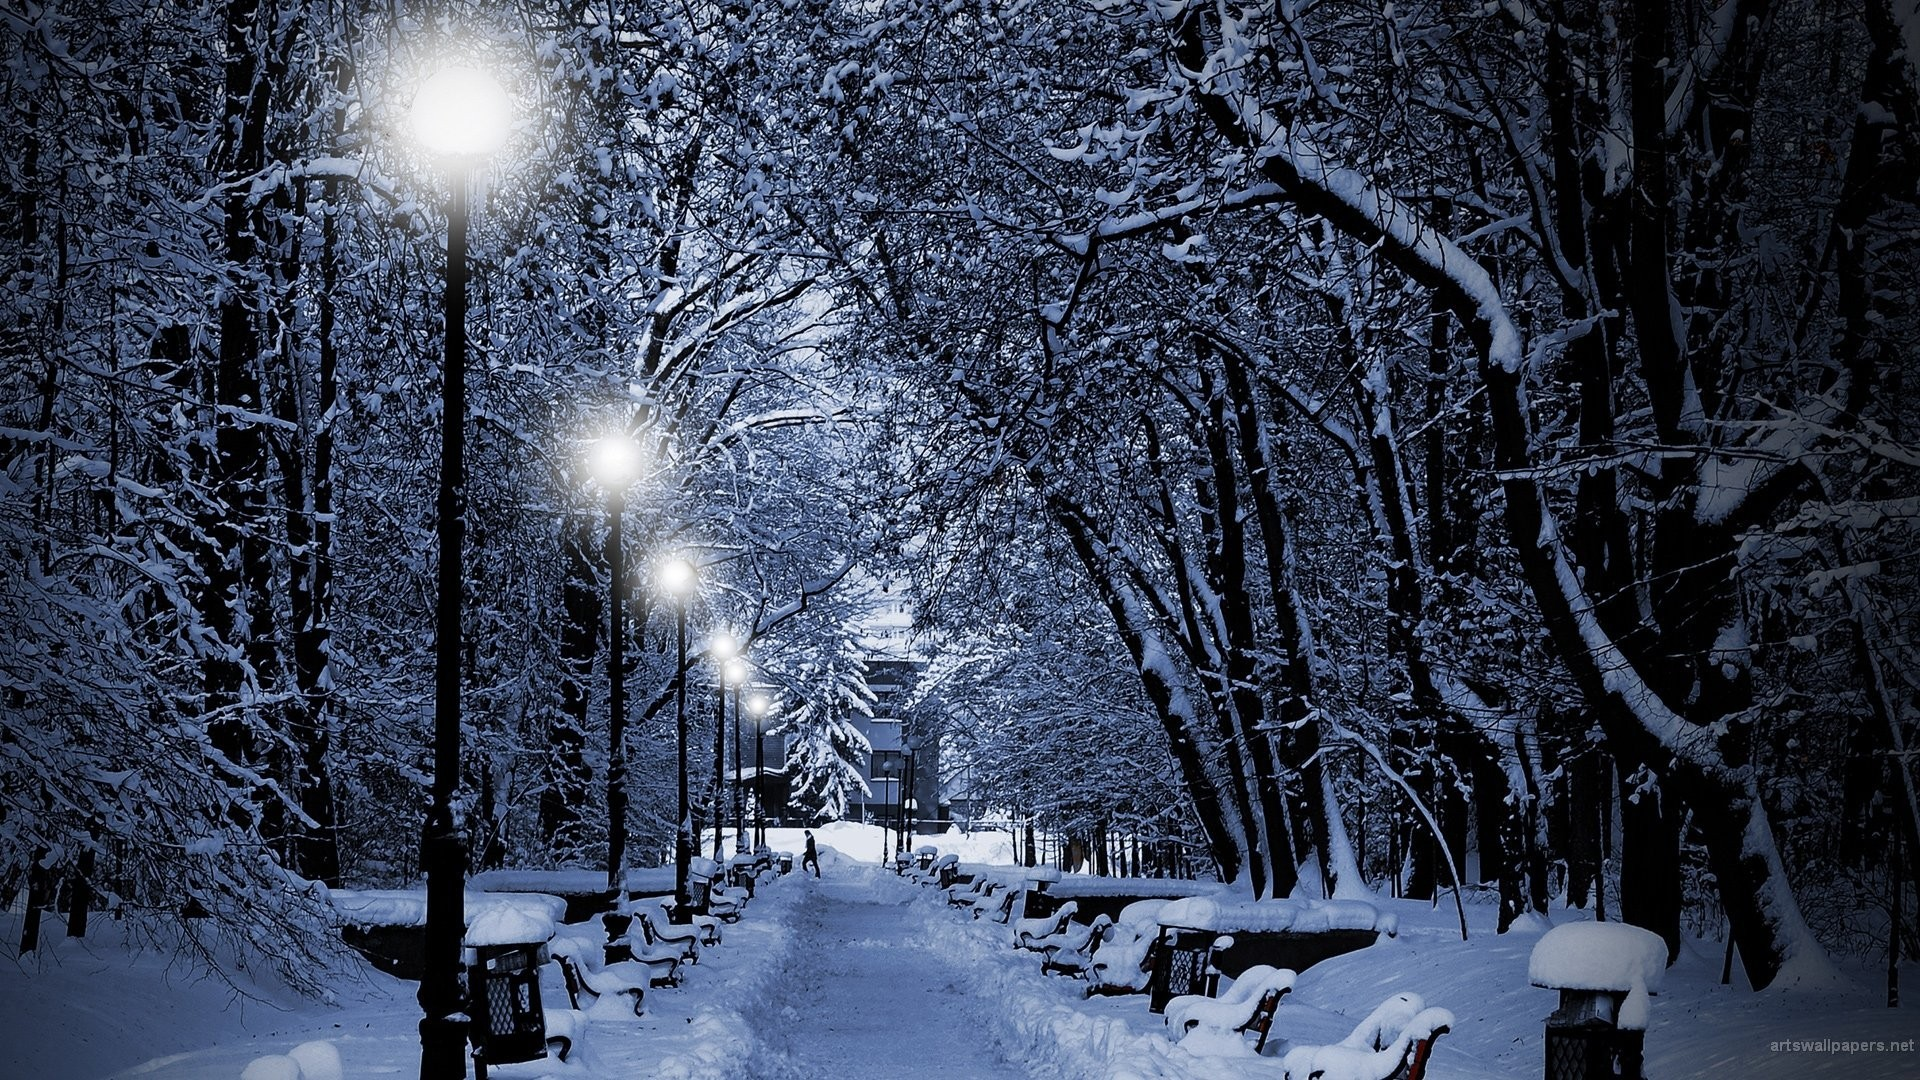 Snow Scenery Wallpaper 64 Pictures